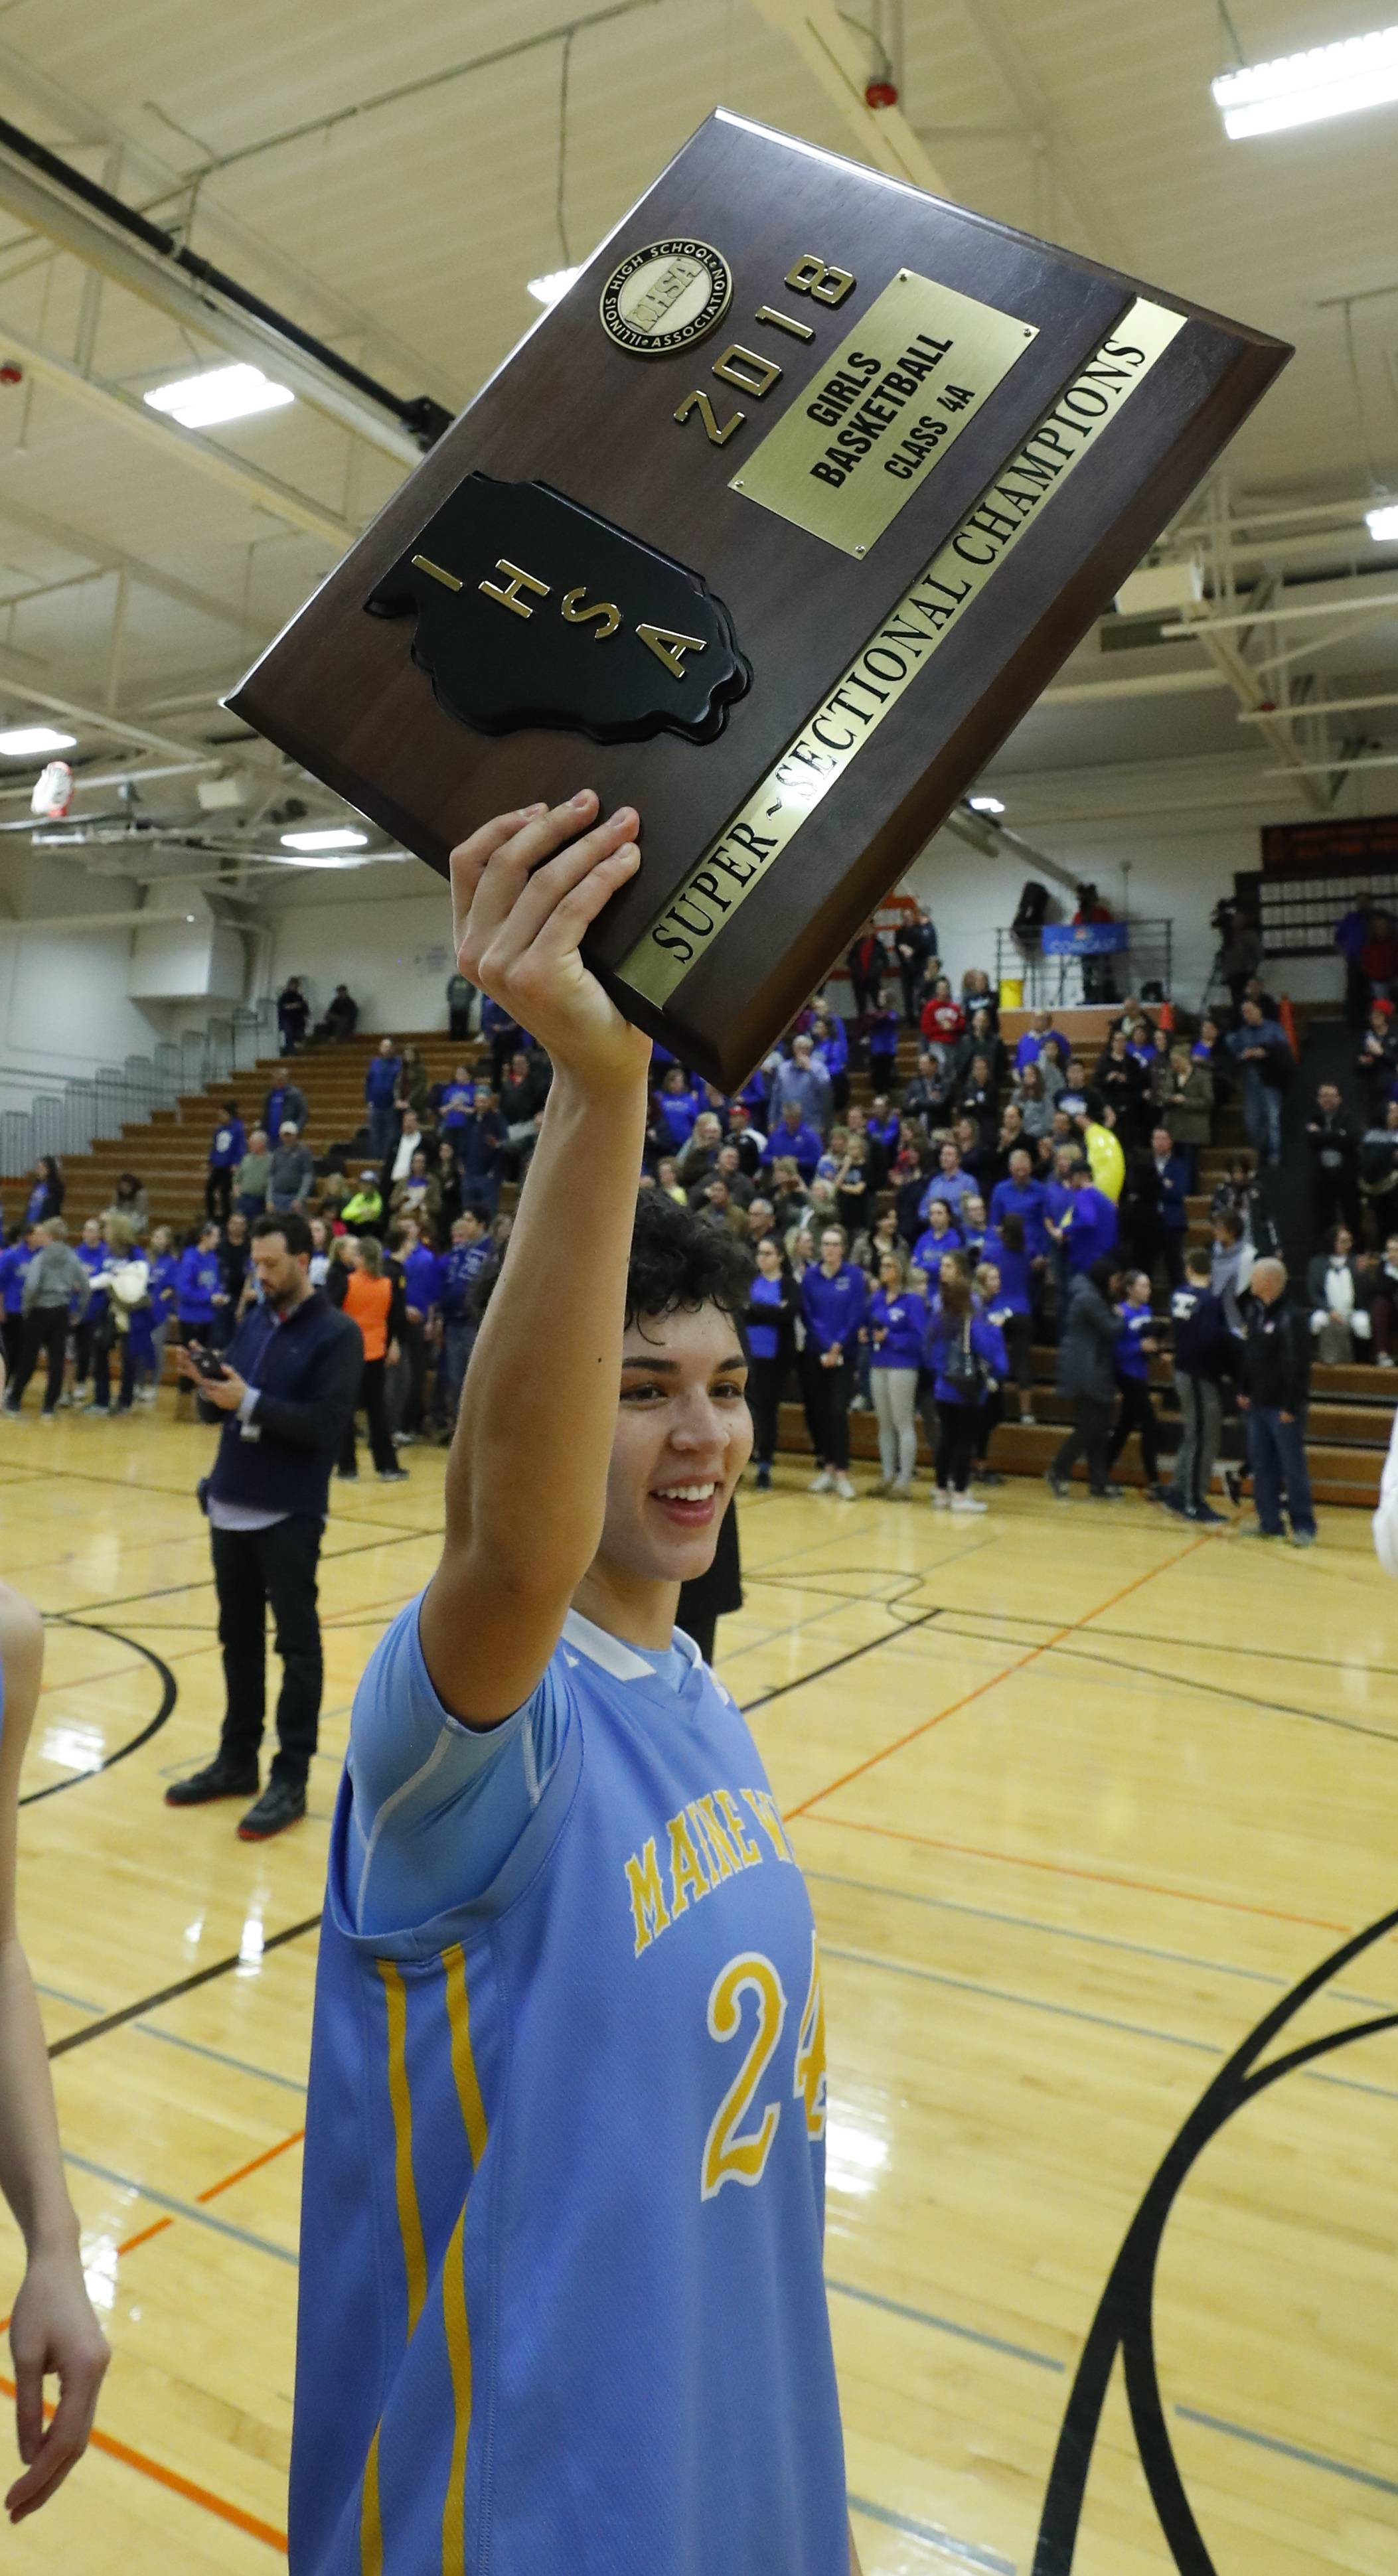 Maine West's Alisa Fallon holds the trophy after the Warriors' 52-42 win over Lake Zurich in the Class 4A Hersey supersectional in Arlington Heights on Monday.